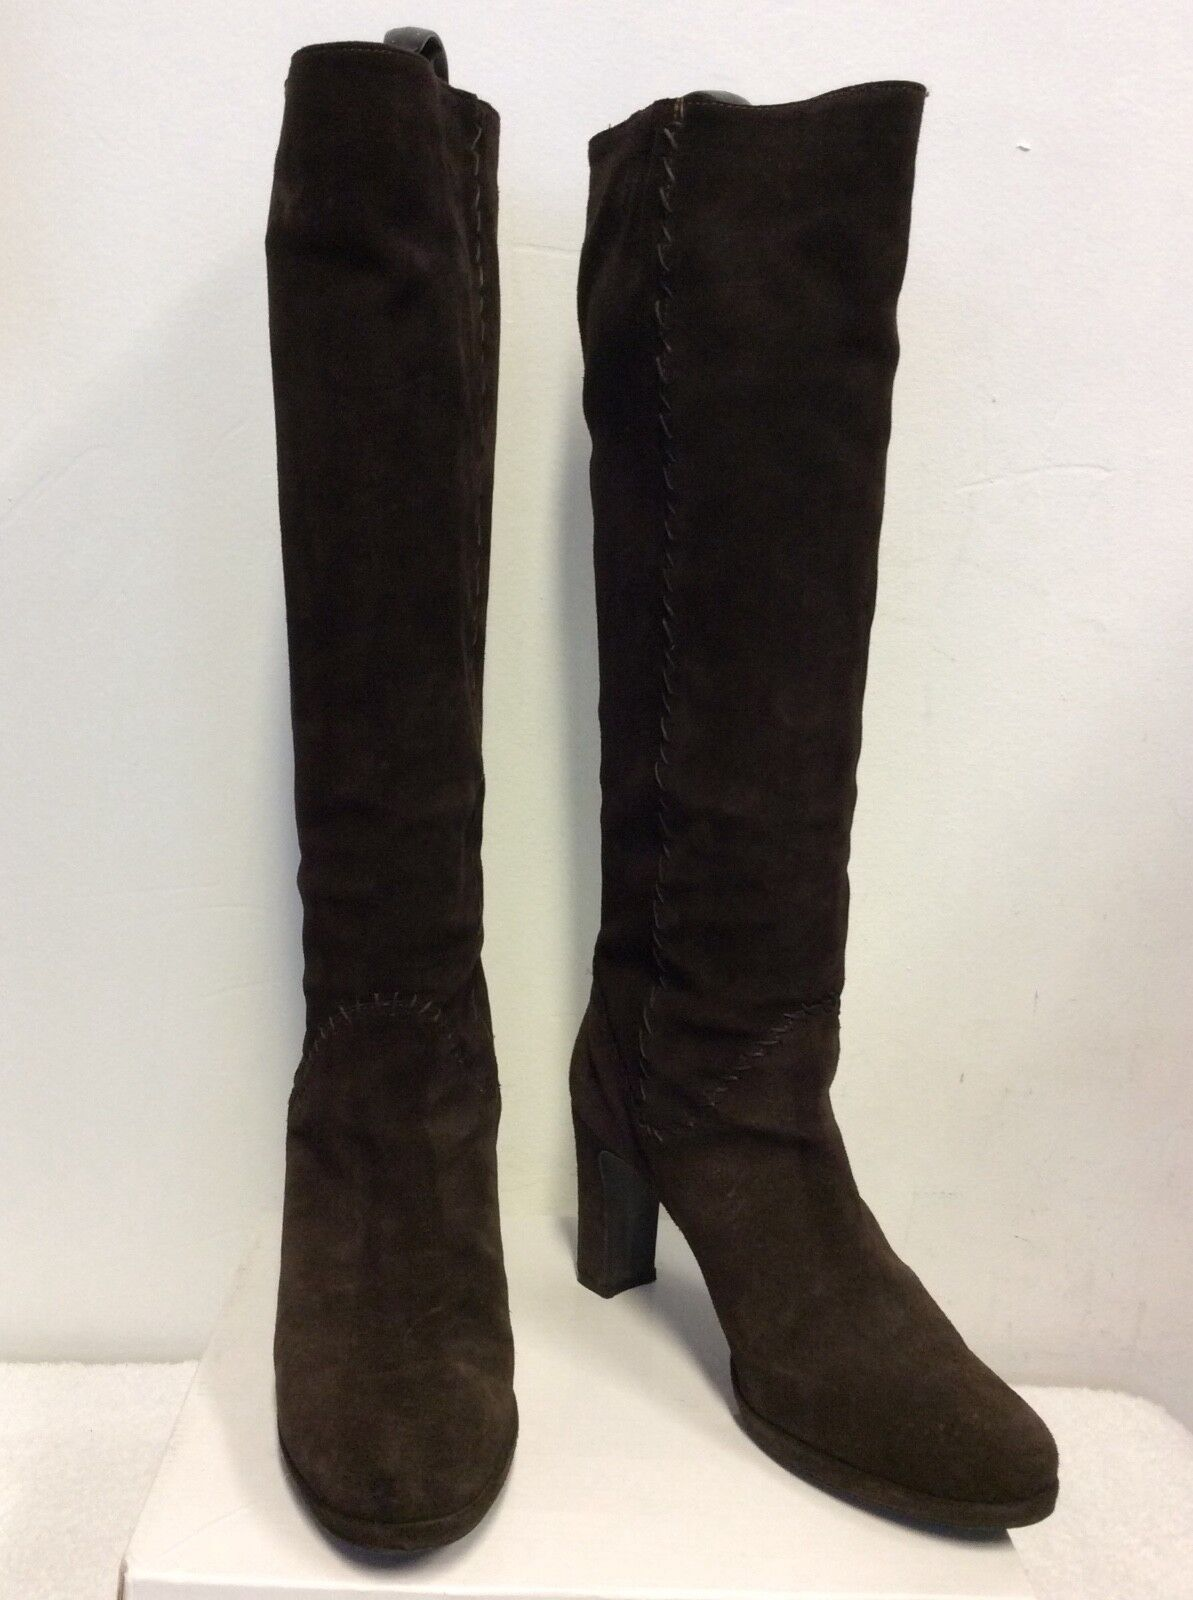 DOLCIS  STITCH DARK BROWN SUEDE STITCH  TRIM KNEE LENGTH Stiefel SIZE 6/39 3f8a3b